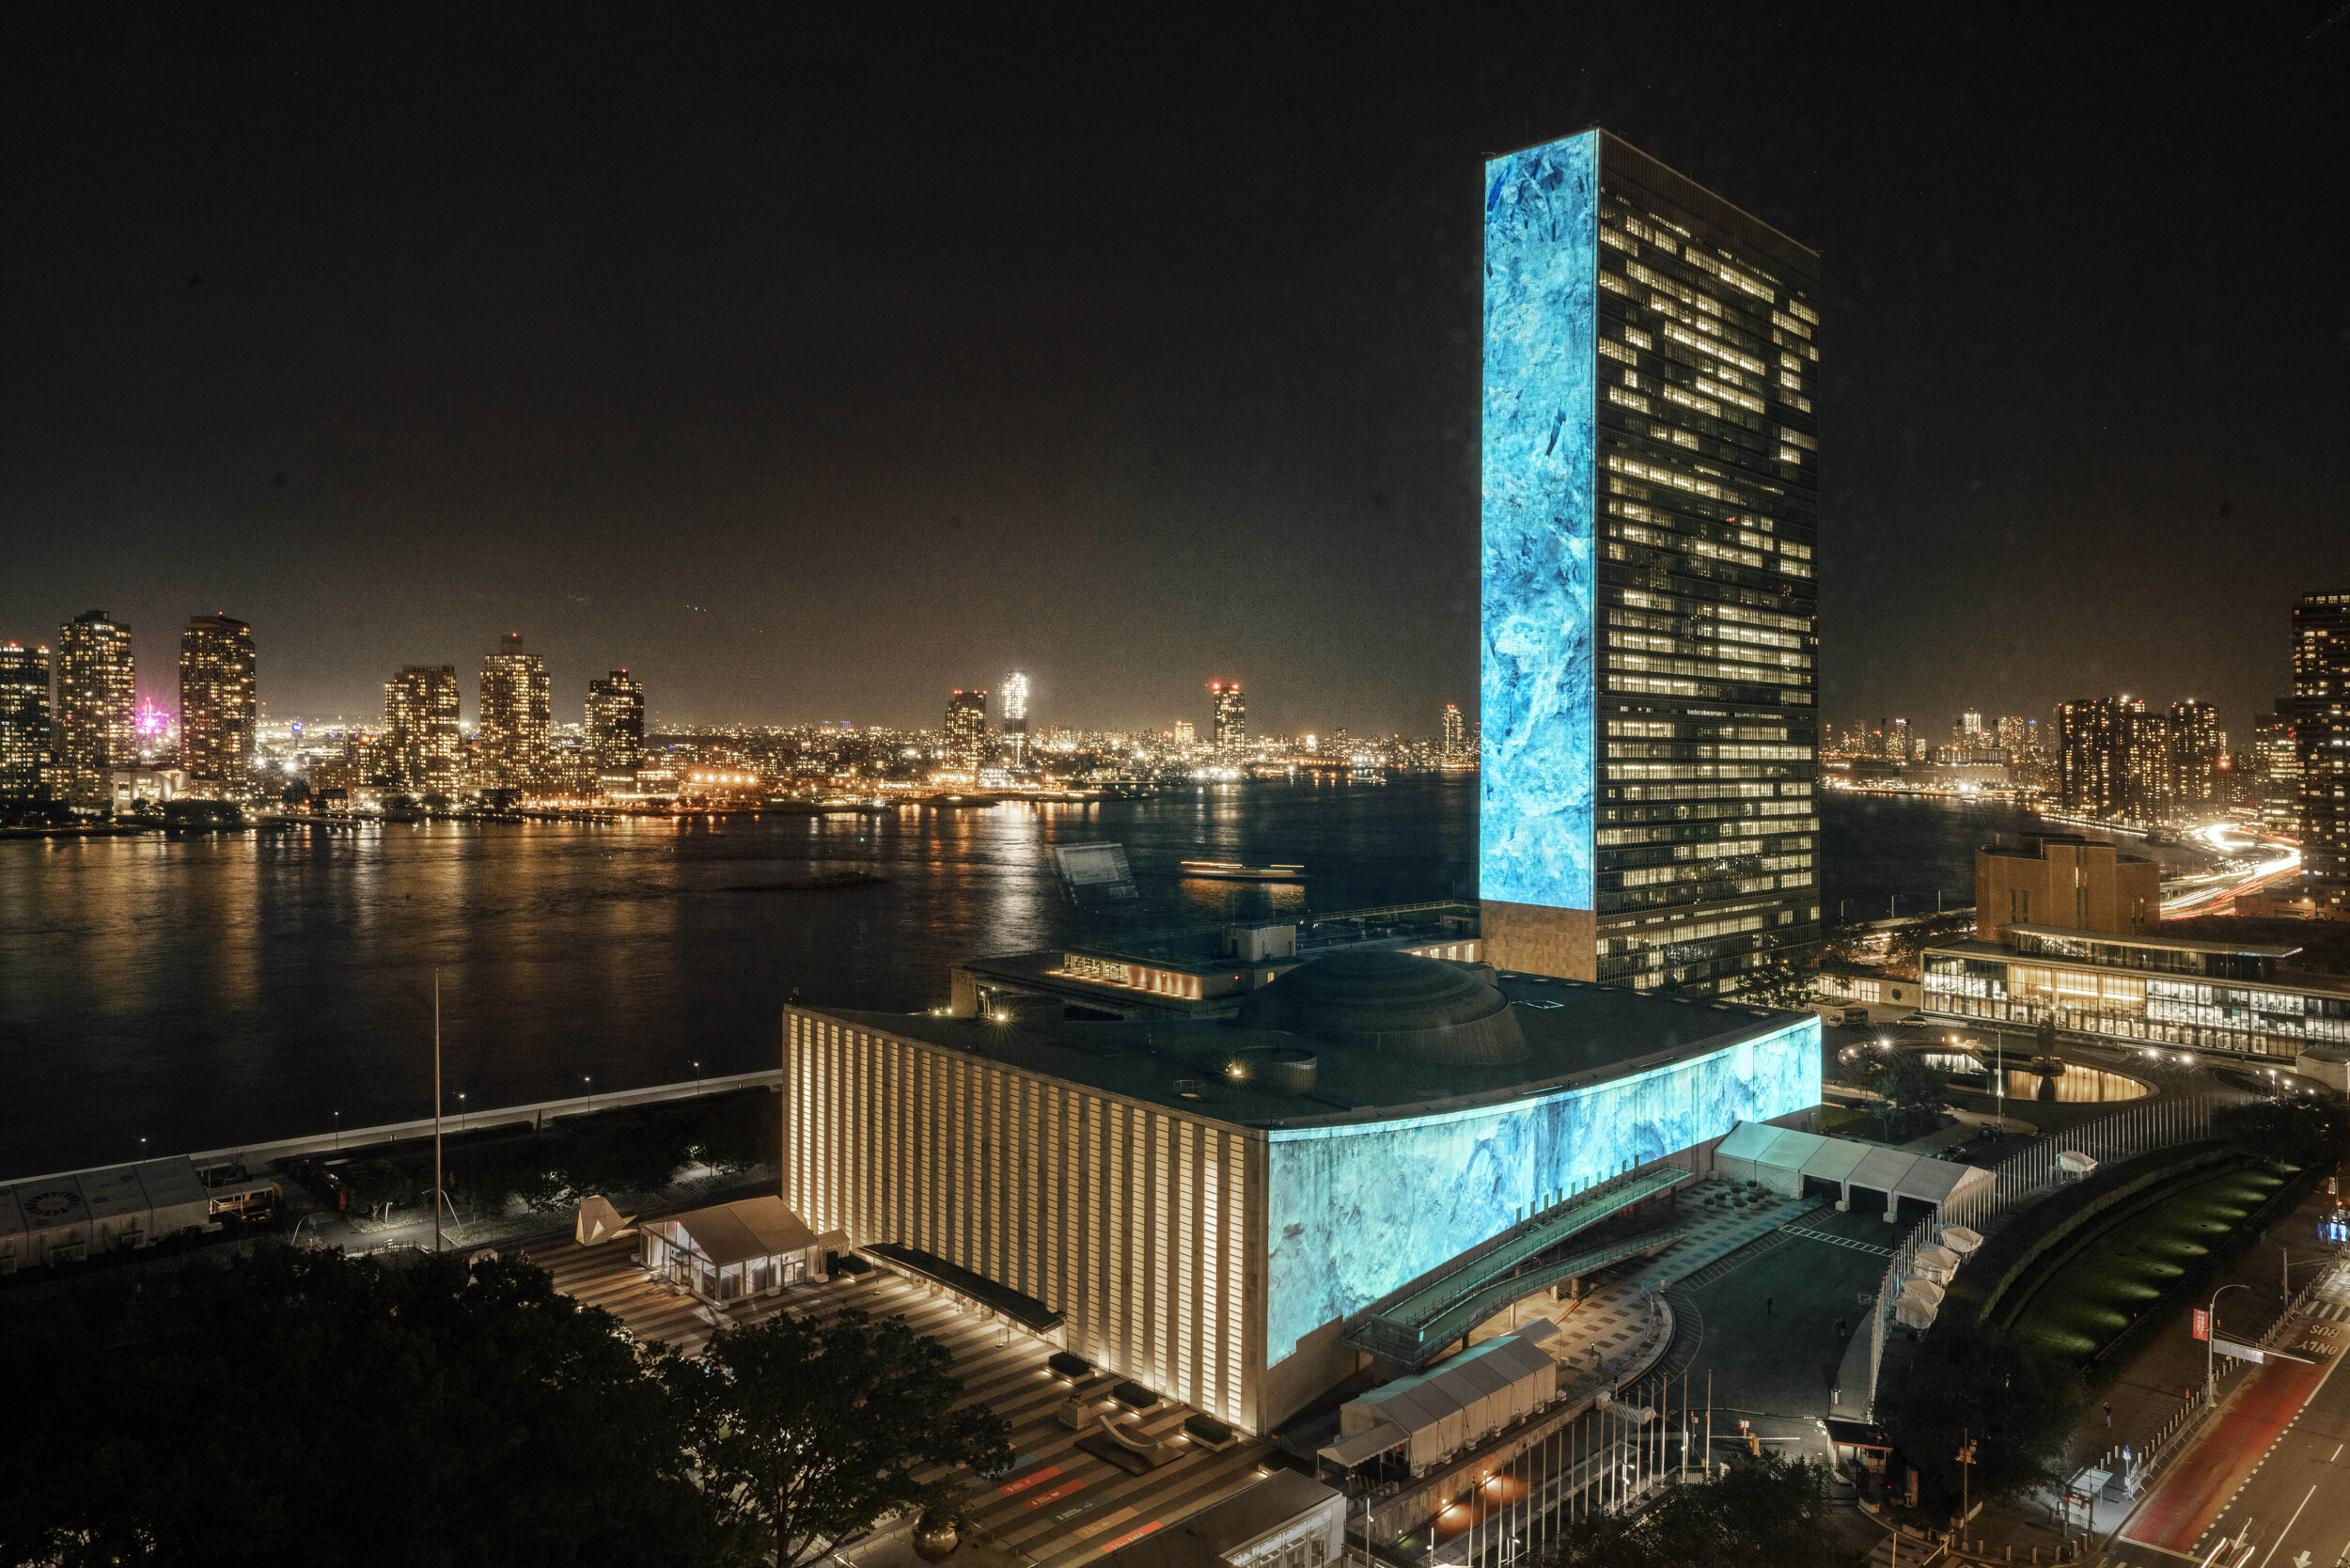 Voices for the Future - Ahmed joined Greta Thunberg and four youth advocates in an audiovisual installation on the UN Complex.